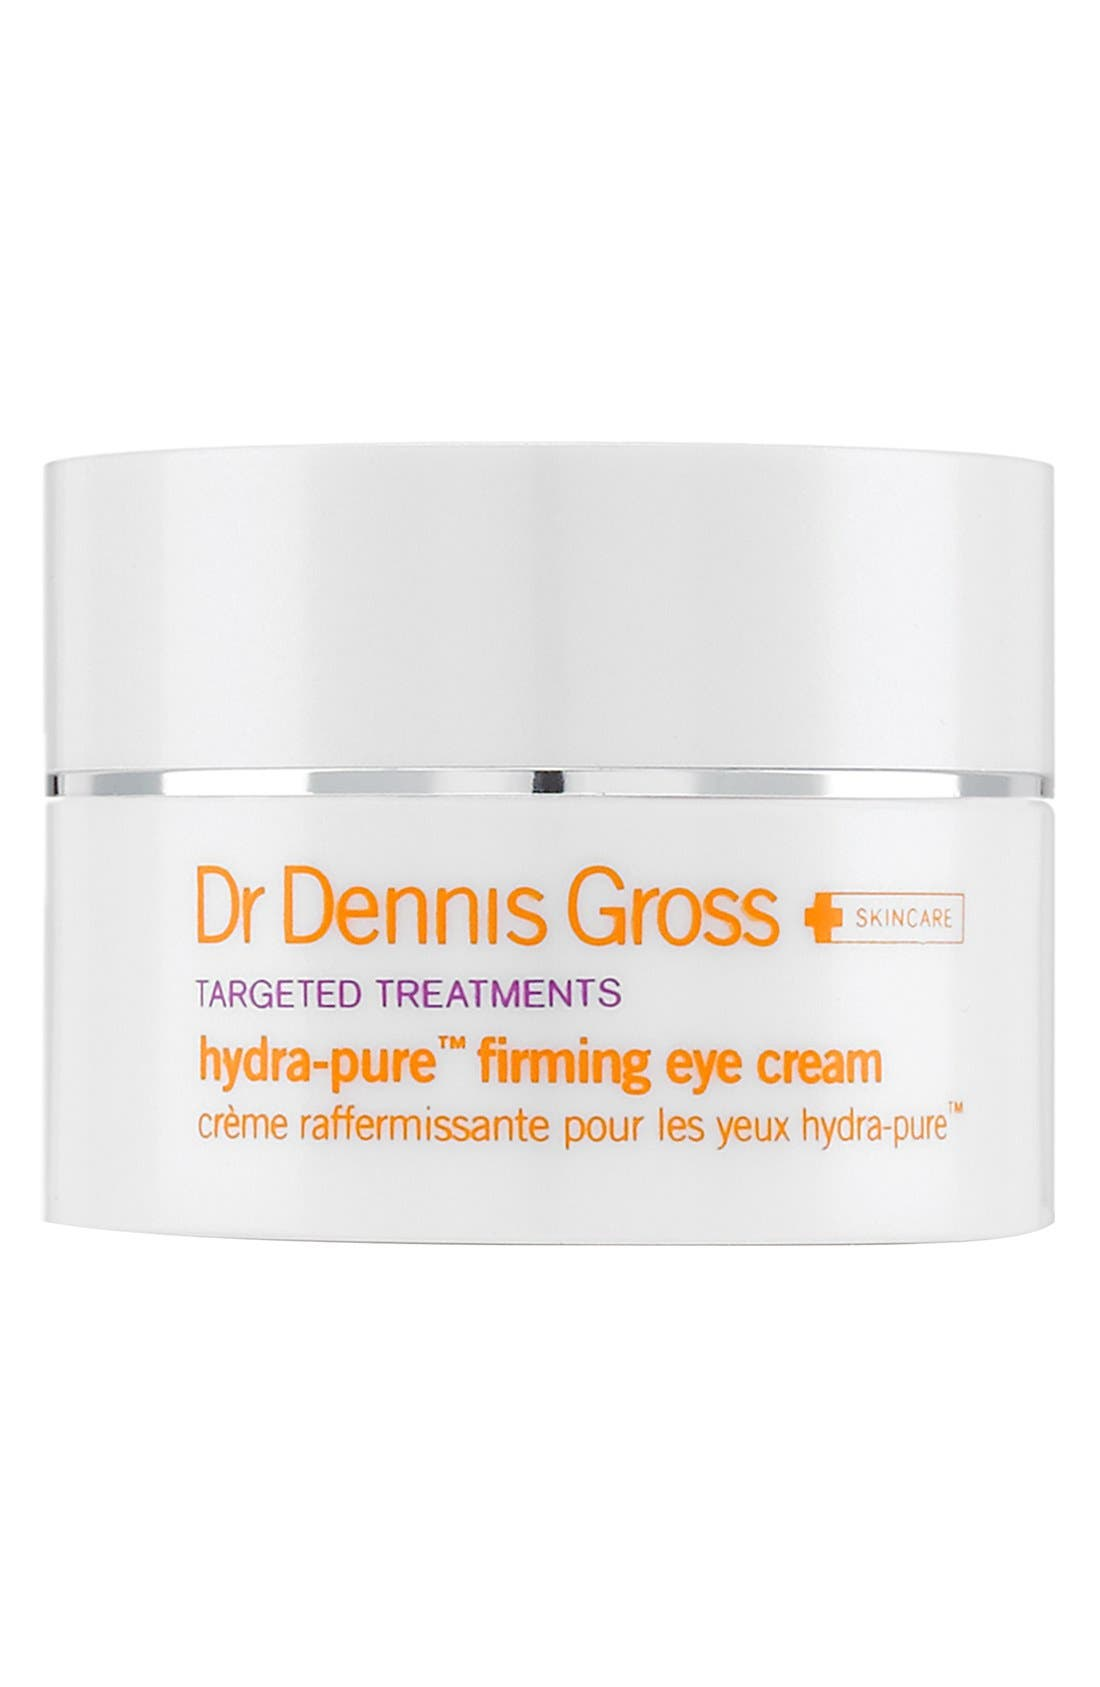 Dr. Dennis Gross Skincare Hydra-Pure Firming Eye Cream